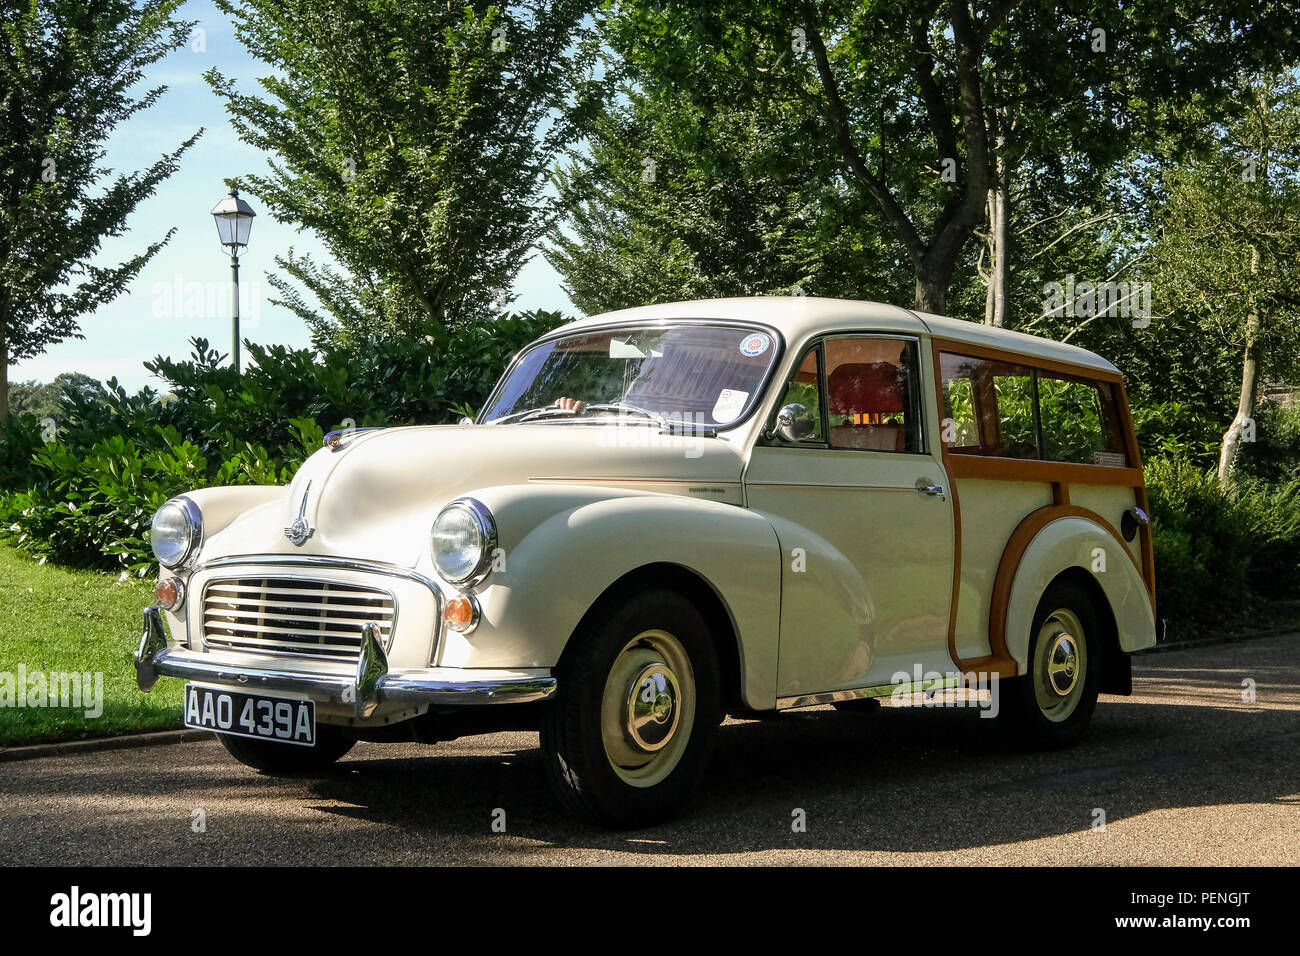 A Classic early 1970s Morris Minor Traveller Estate - Stock Image